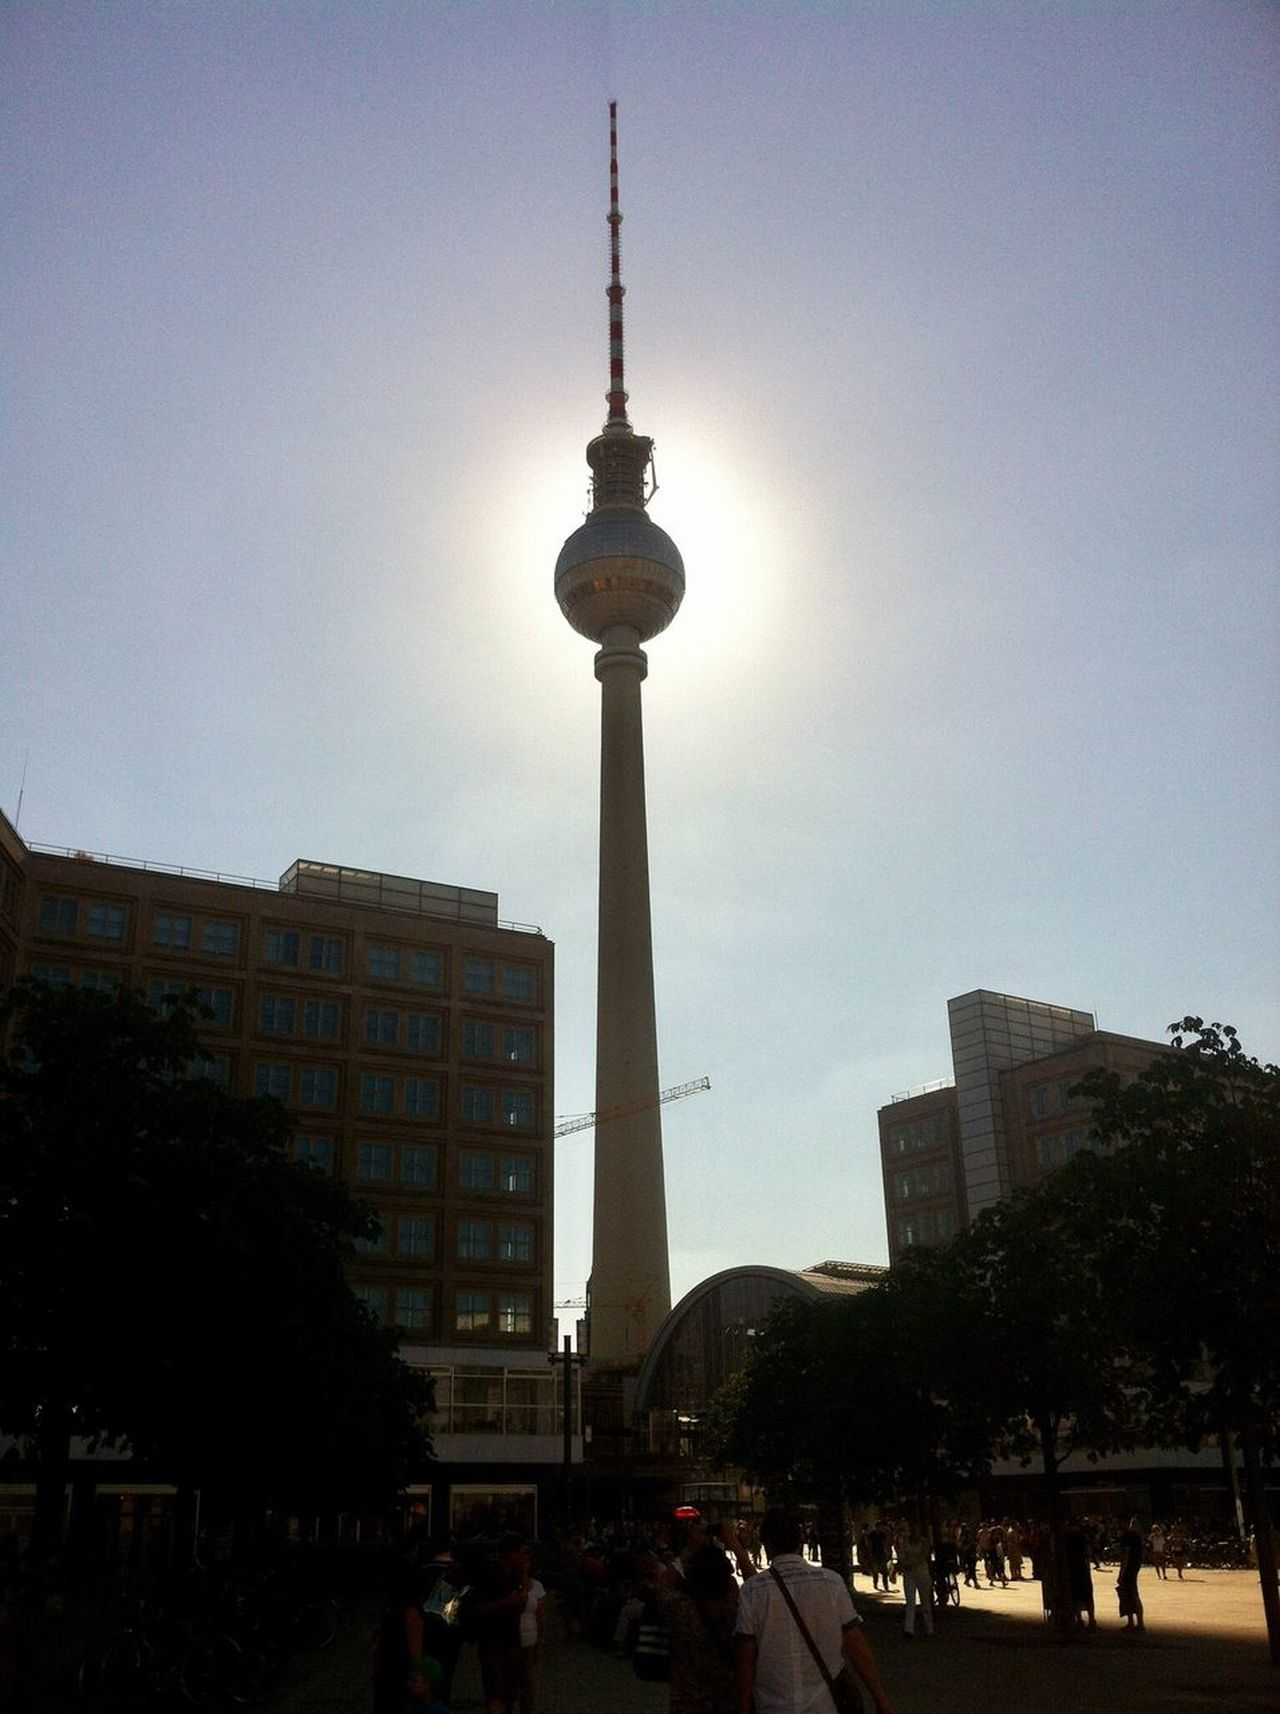 Architecture City Tower Tourism Built Structure Television Tower Building Exterior Communication Modern Outdoors Travel Destinations Sky Skyscraper People Tree Day Adult Berlin Fernsehturm Berlin  Fernsehturmberlin